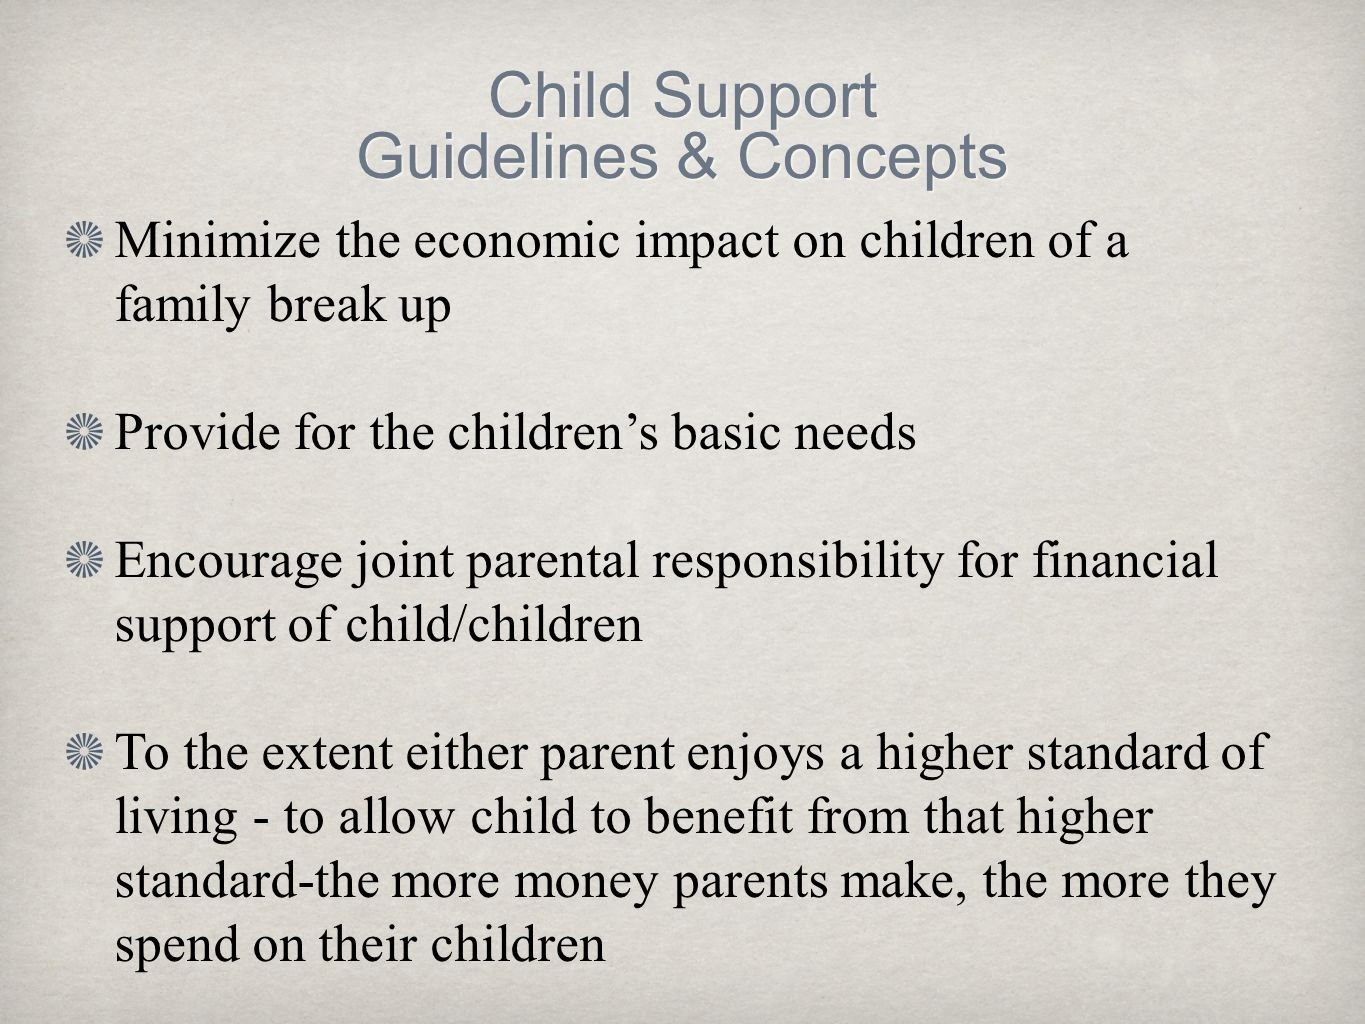 Child Support Guidelines & Concepts